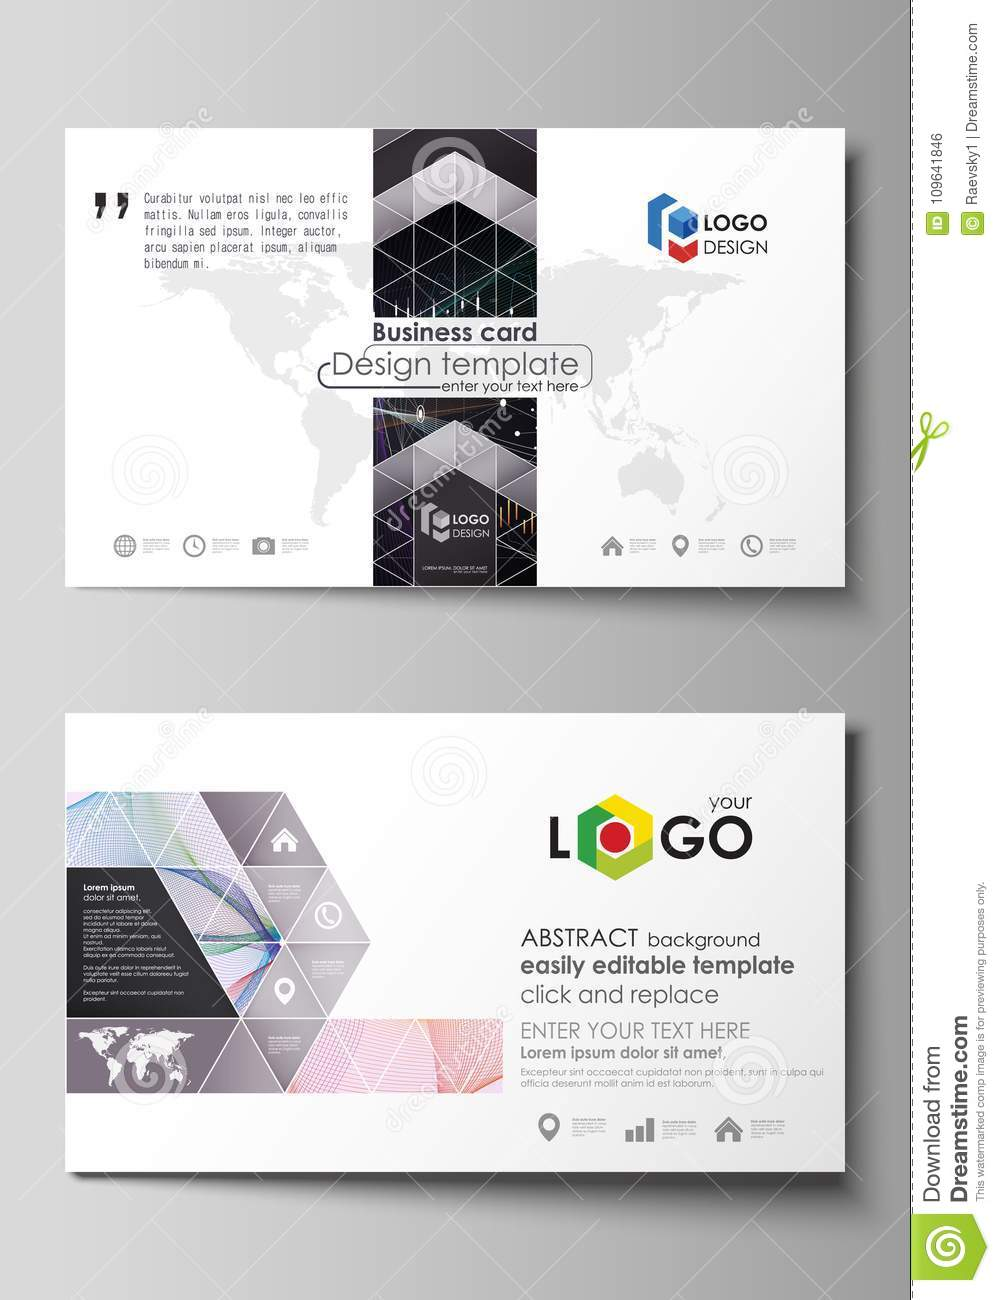 Business card templates easy editable vector layout colorful business card templates easy editable vector layout colorful abstract design infographic background in minimalist wajeb Images